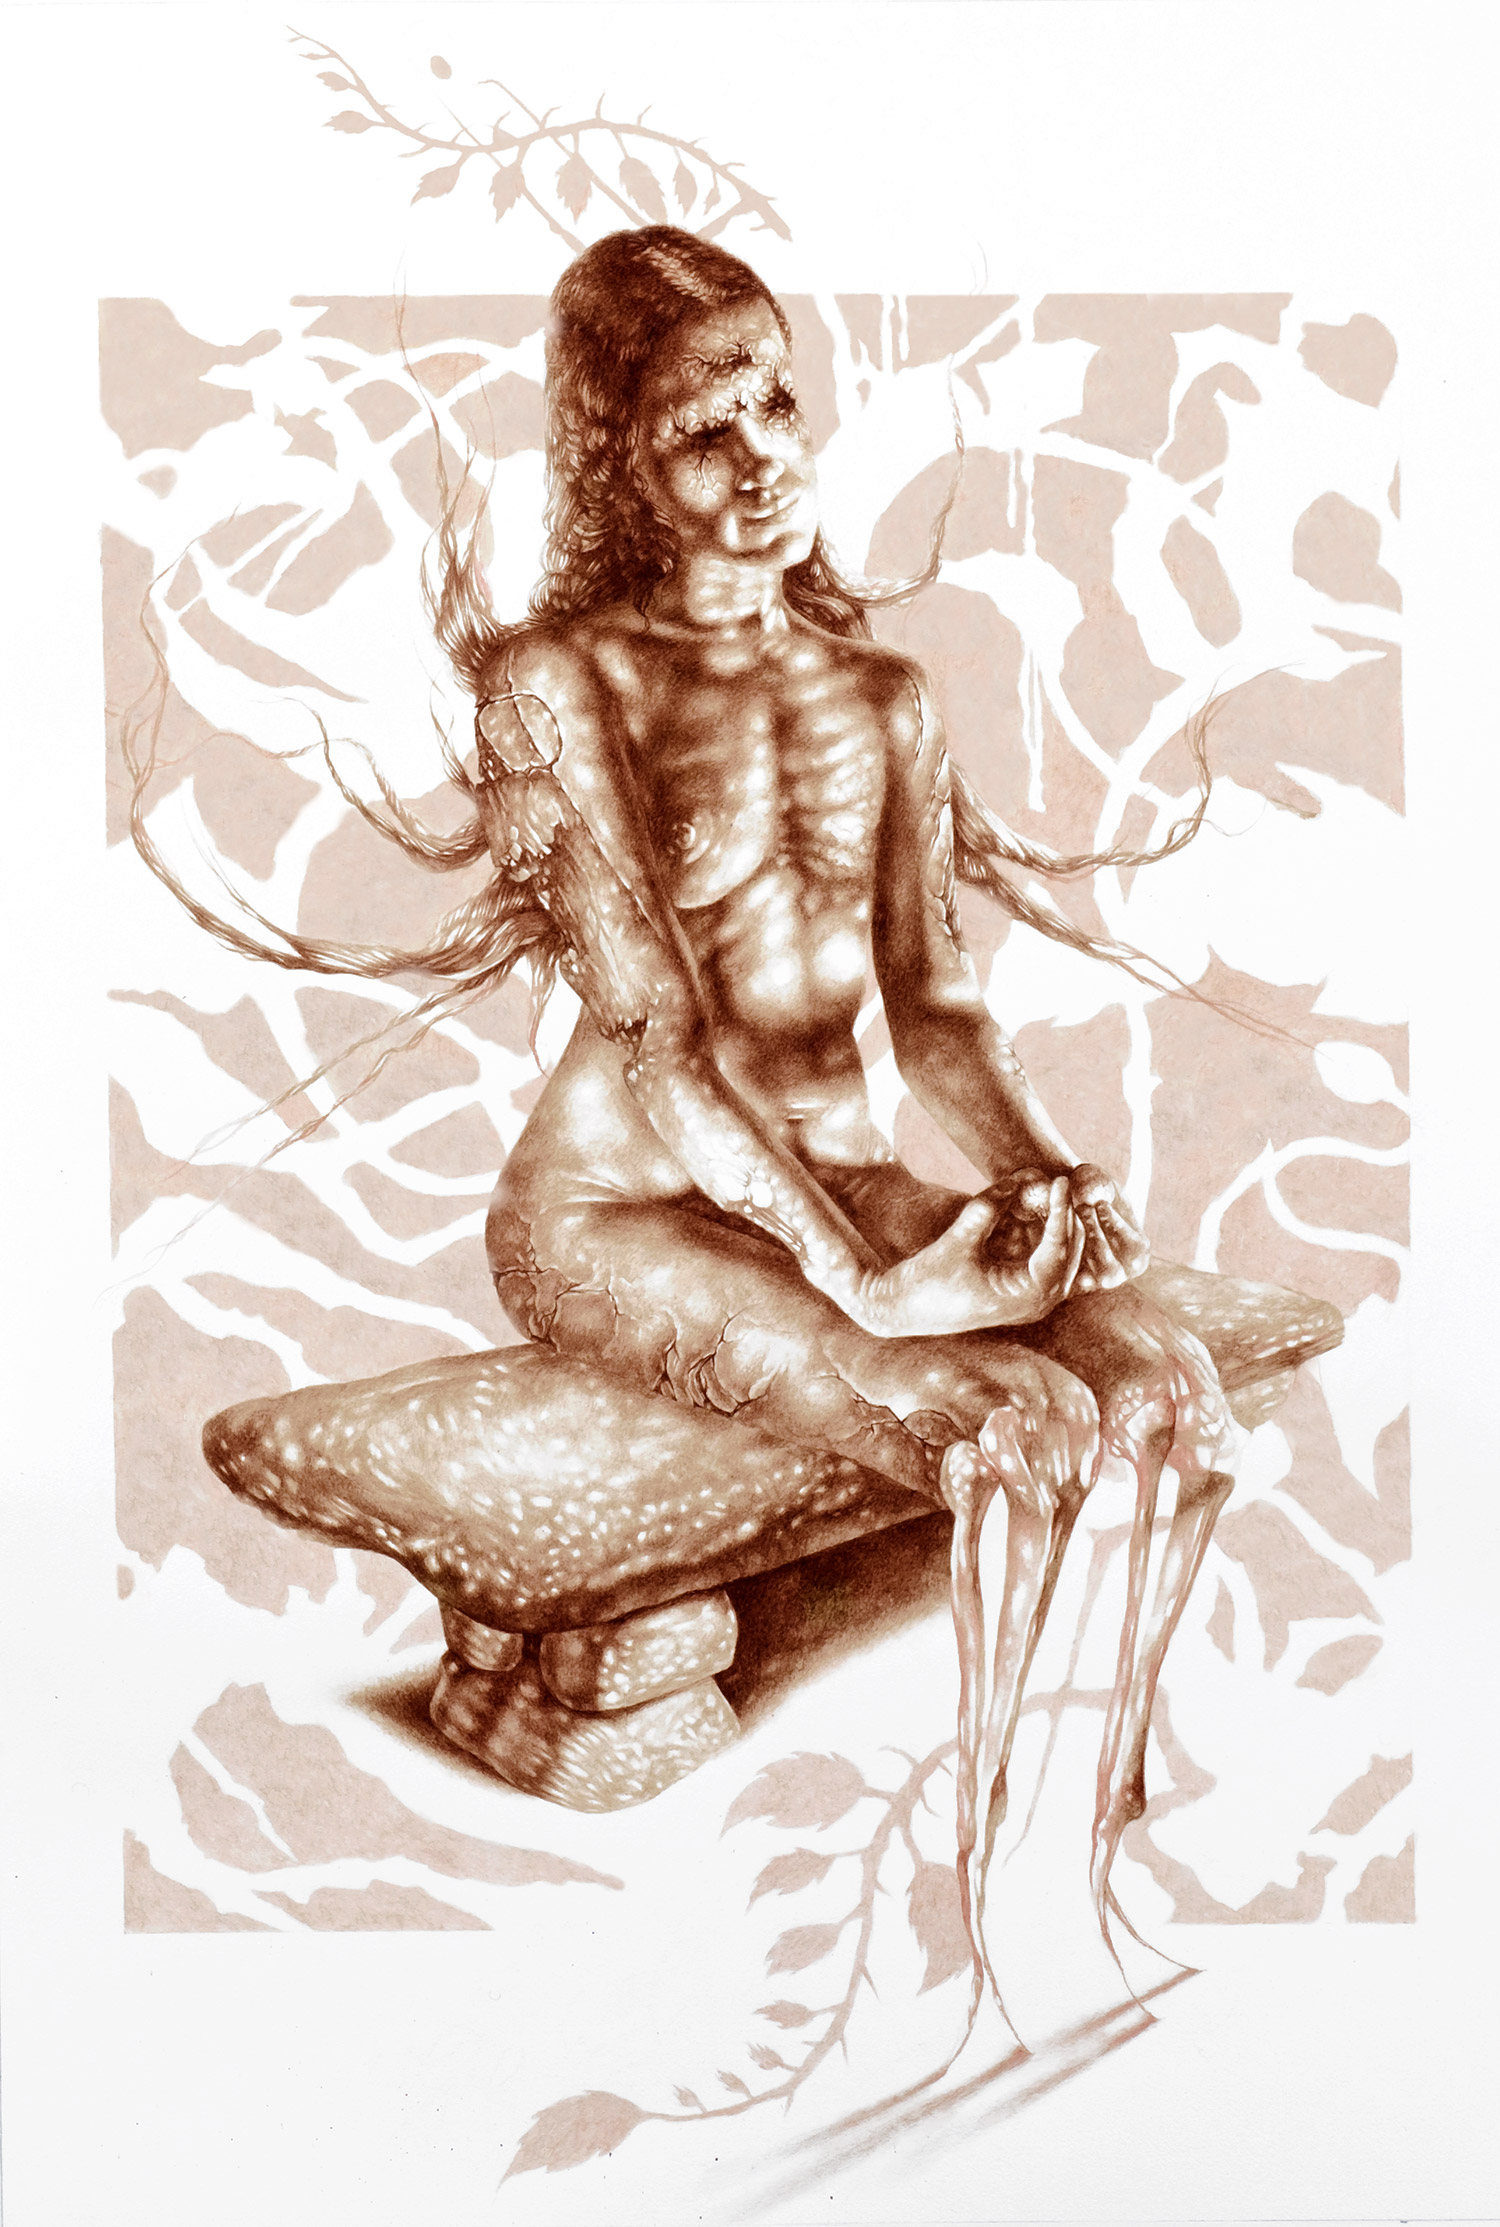 Vincent Castiglia - The Stare, blood painting